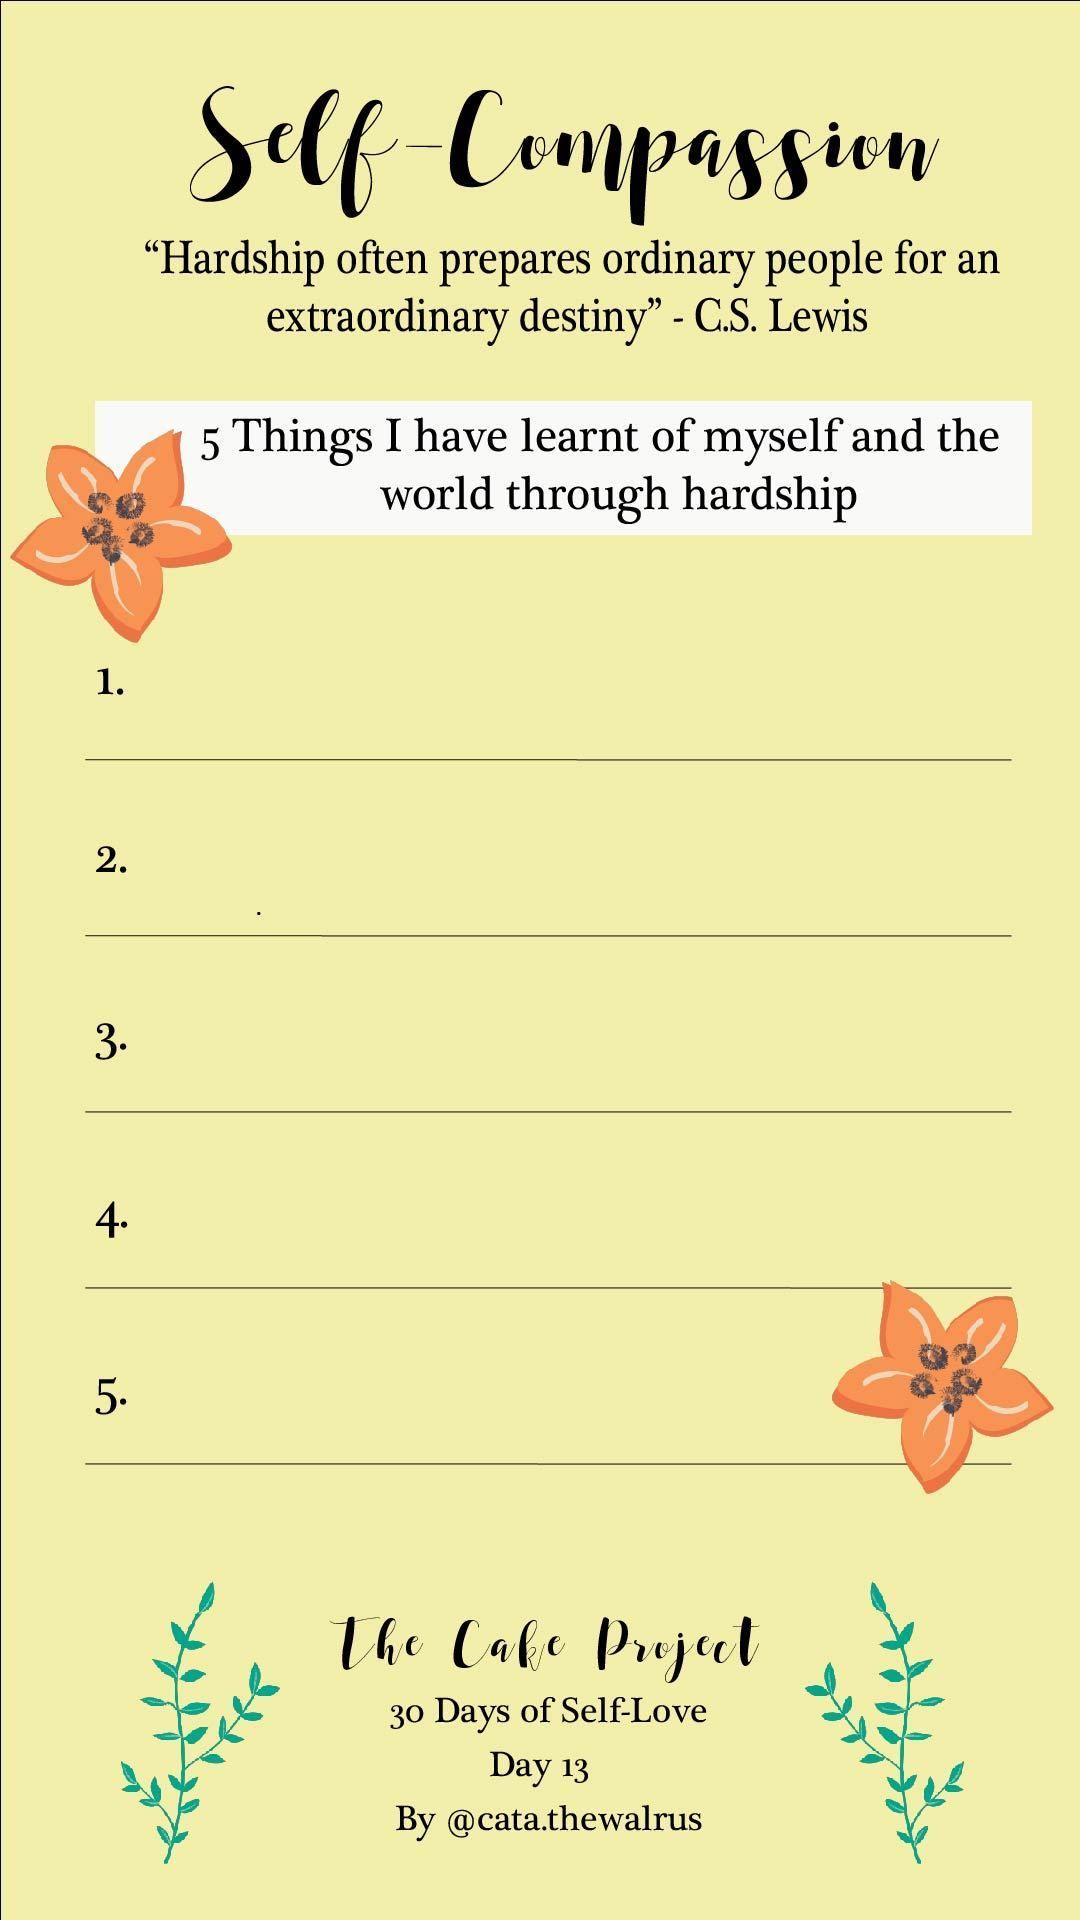 Day 13 Facing Challenge And Hardship